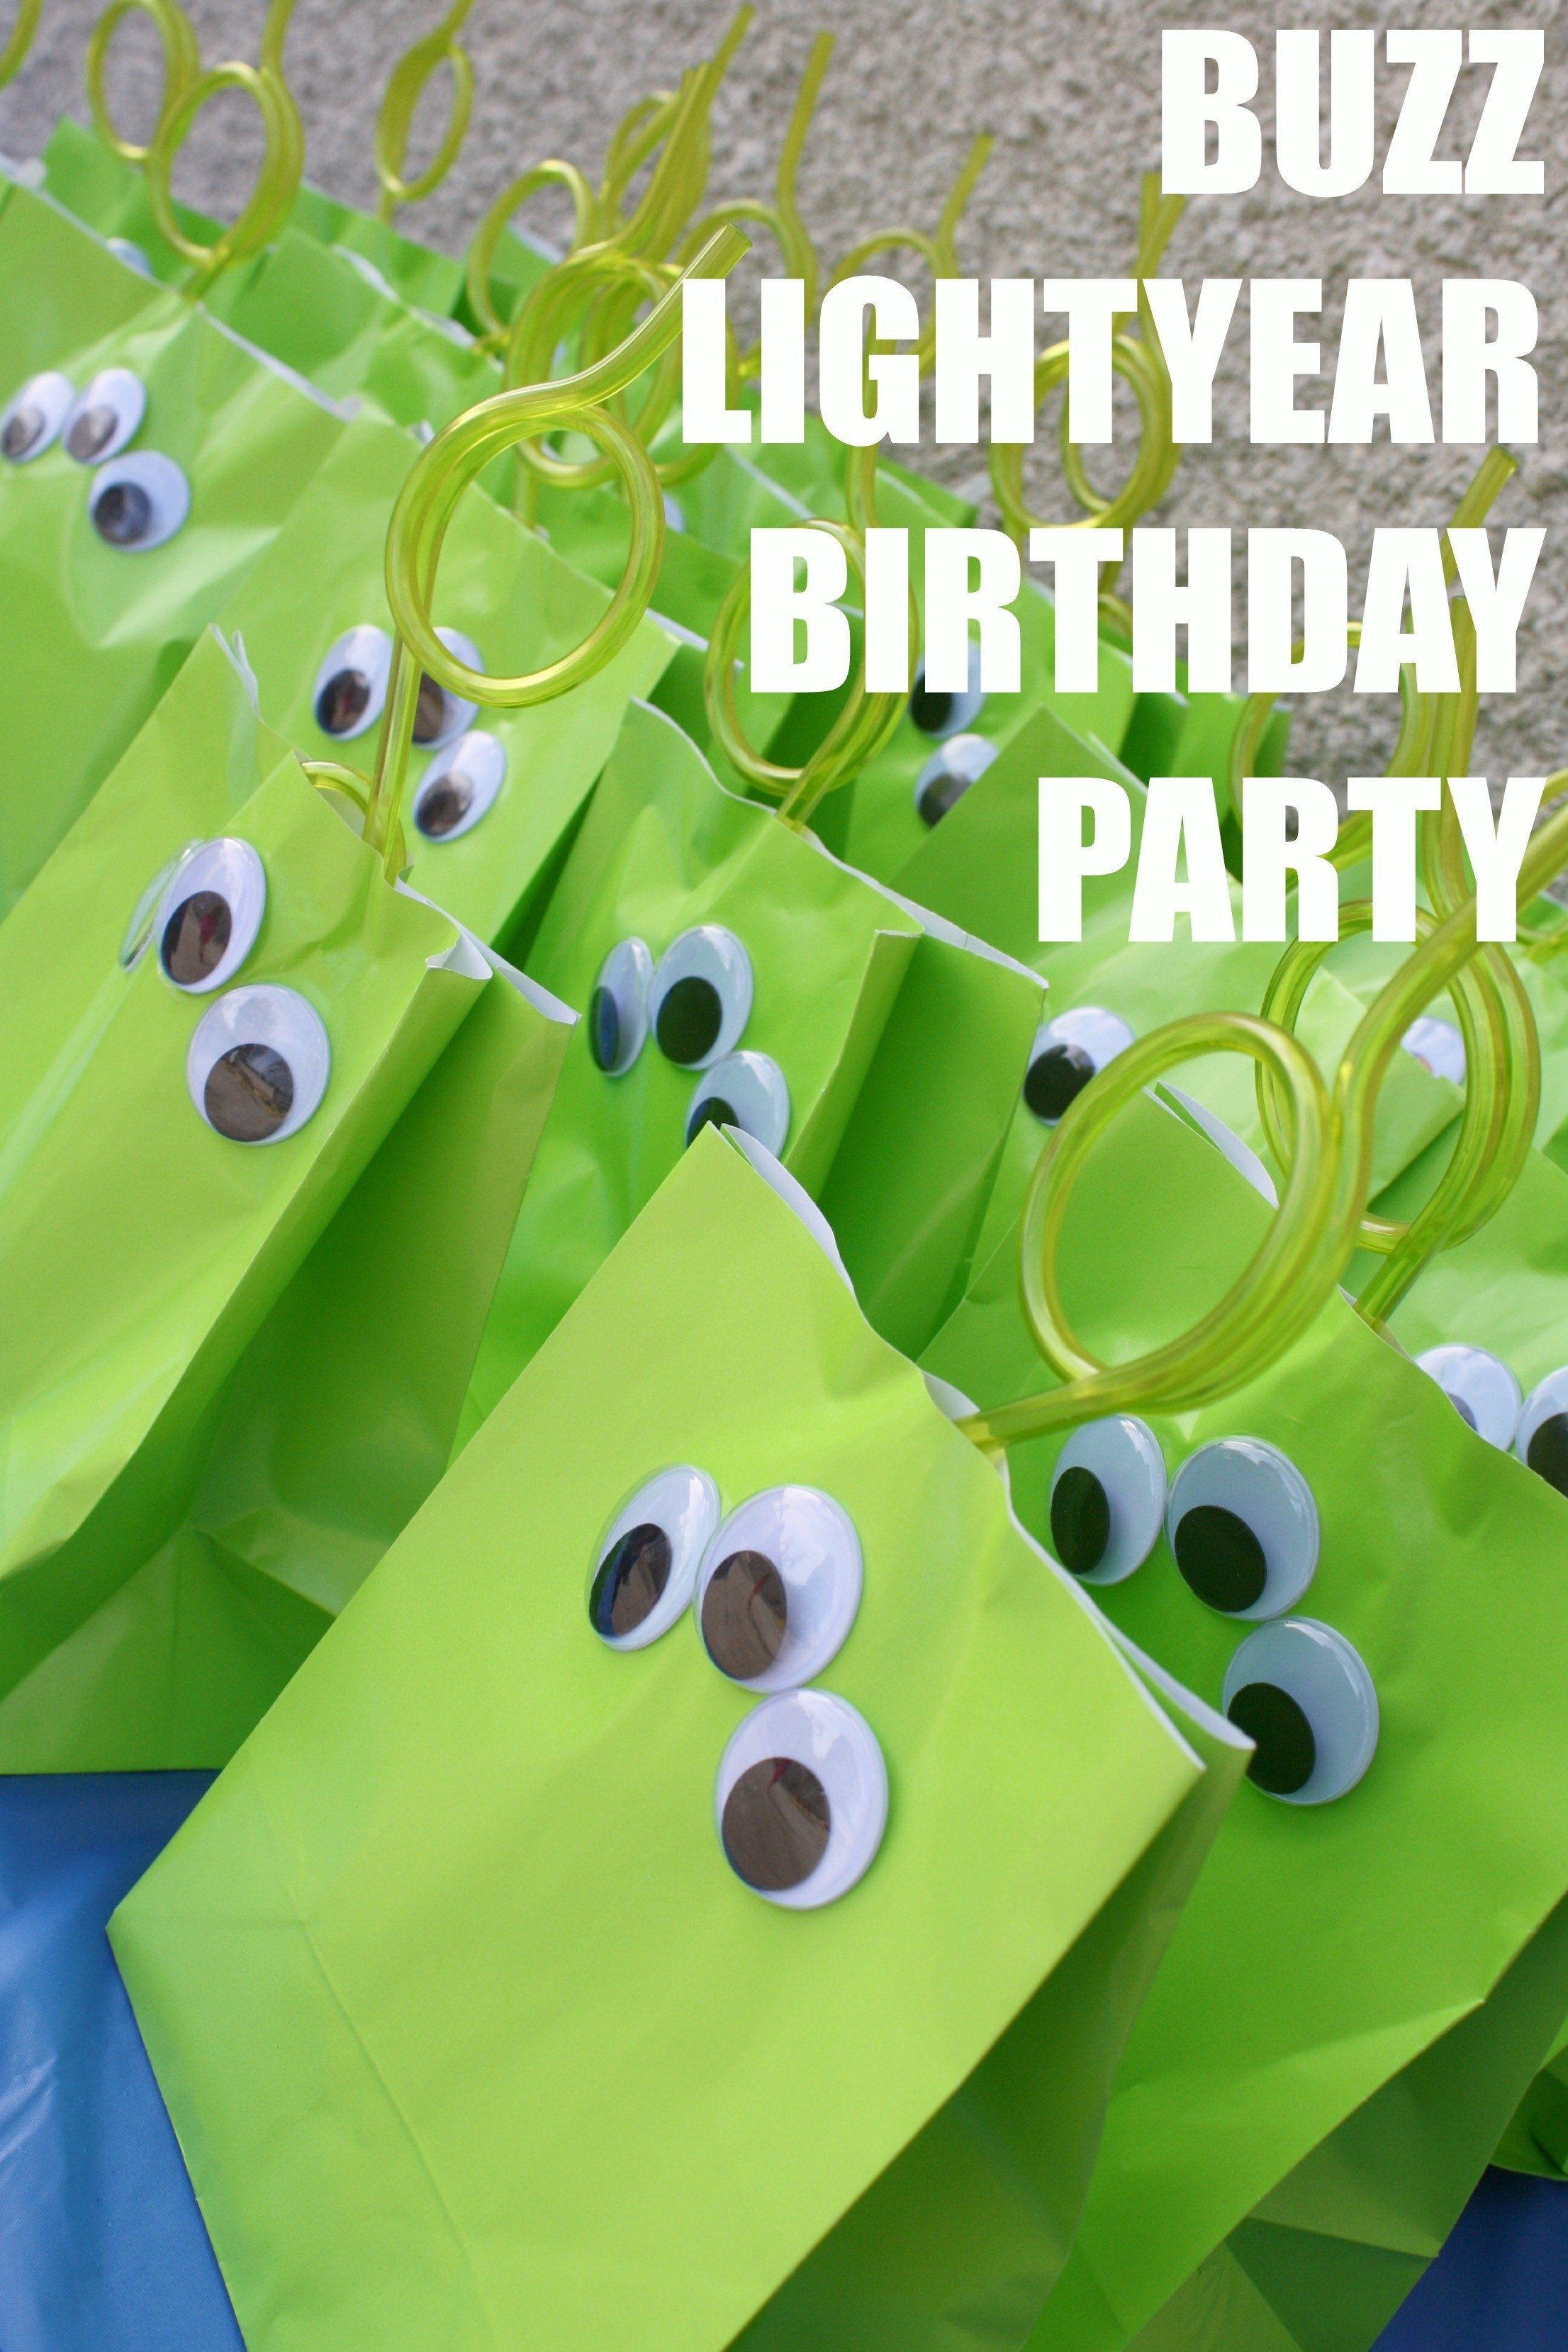 10 Most Recommended Buzz Lightyear Birthday Party Ideas lightyear birthday party